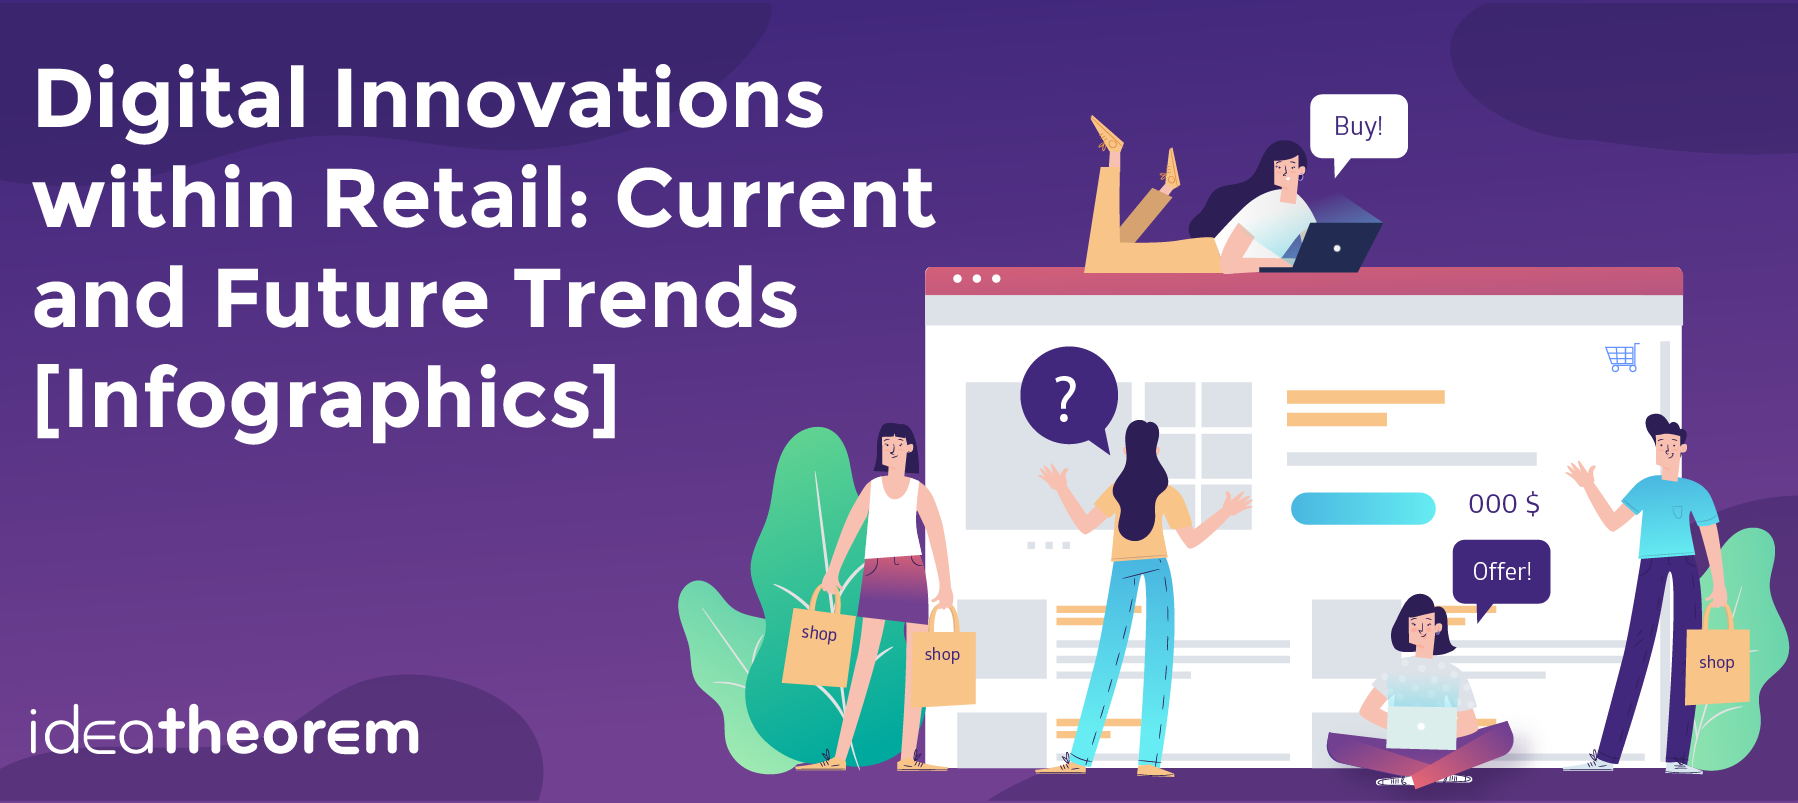 Digital Innovations within Retail: Current and Future Trends [Infographic]